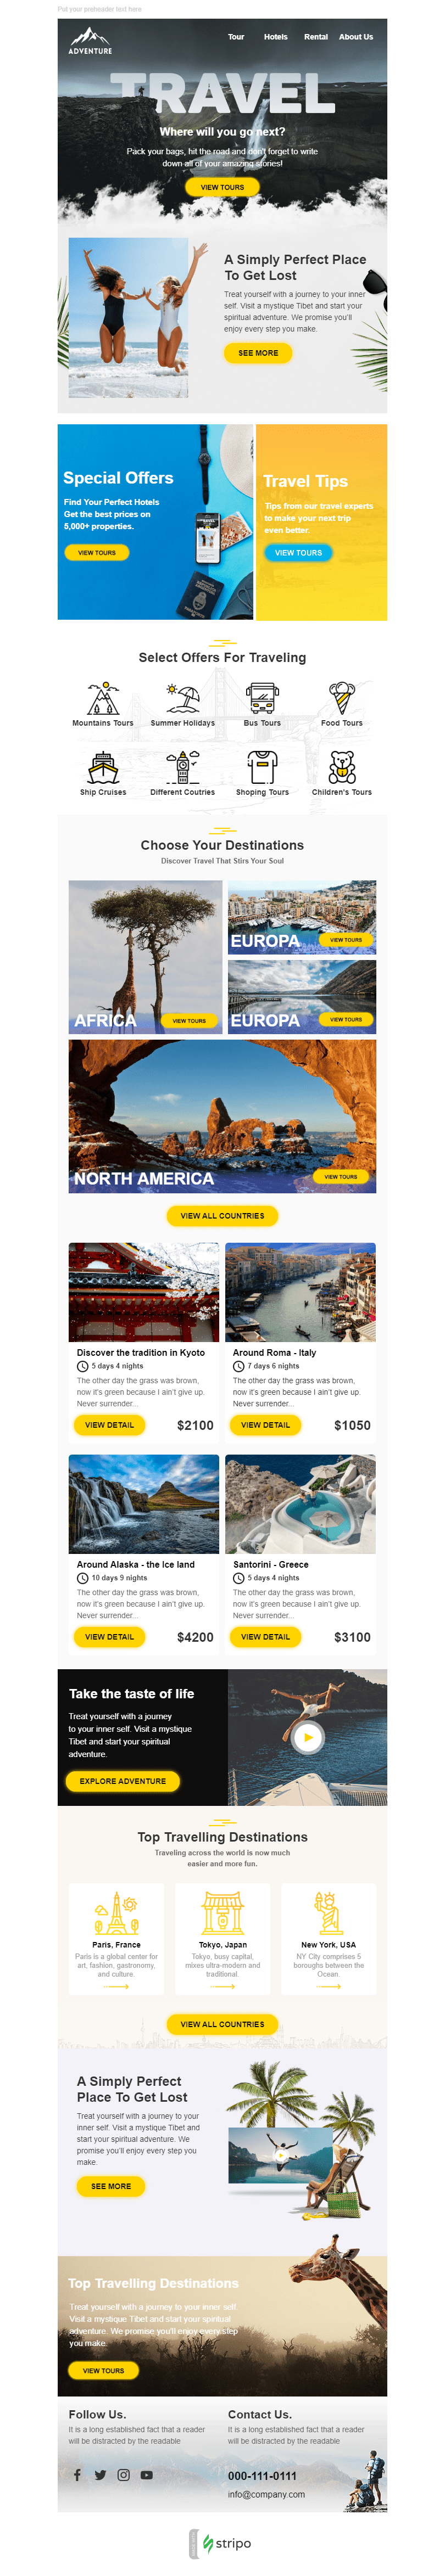 Promo Email Template «Travel Fun» for Tourism industry desktop view